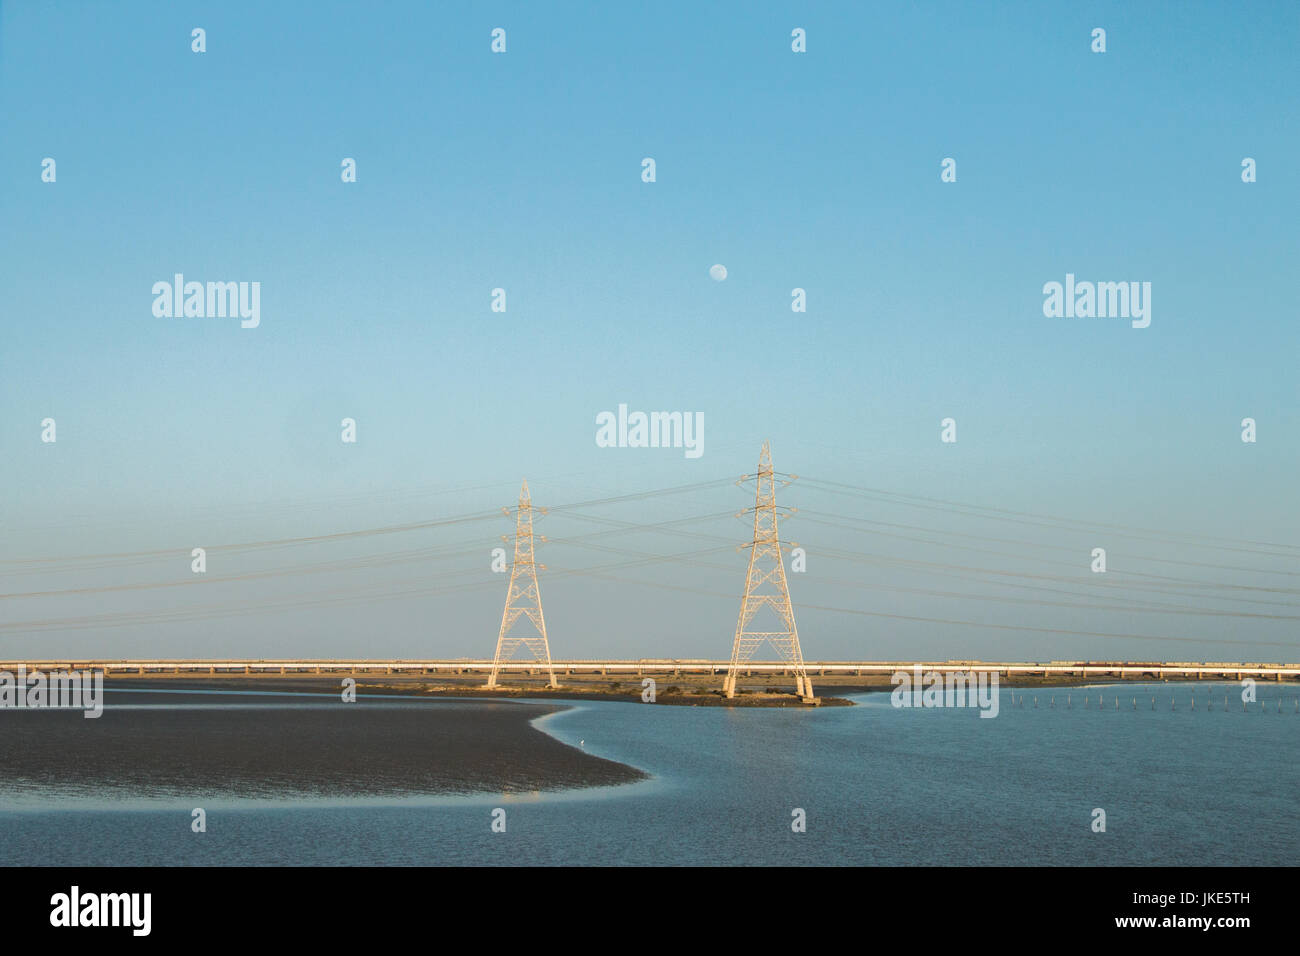 An evening on the highway , salt water area with electric poles and the moon - Stock Image